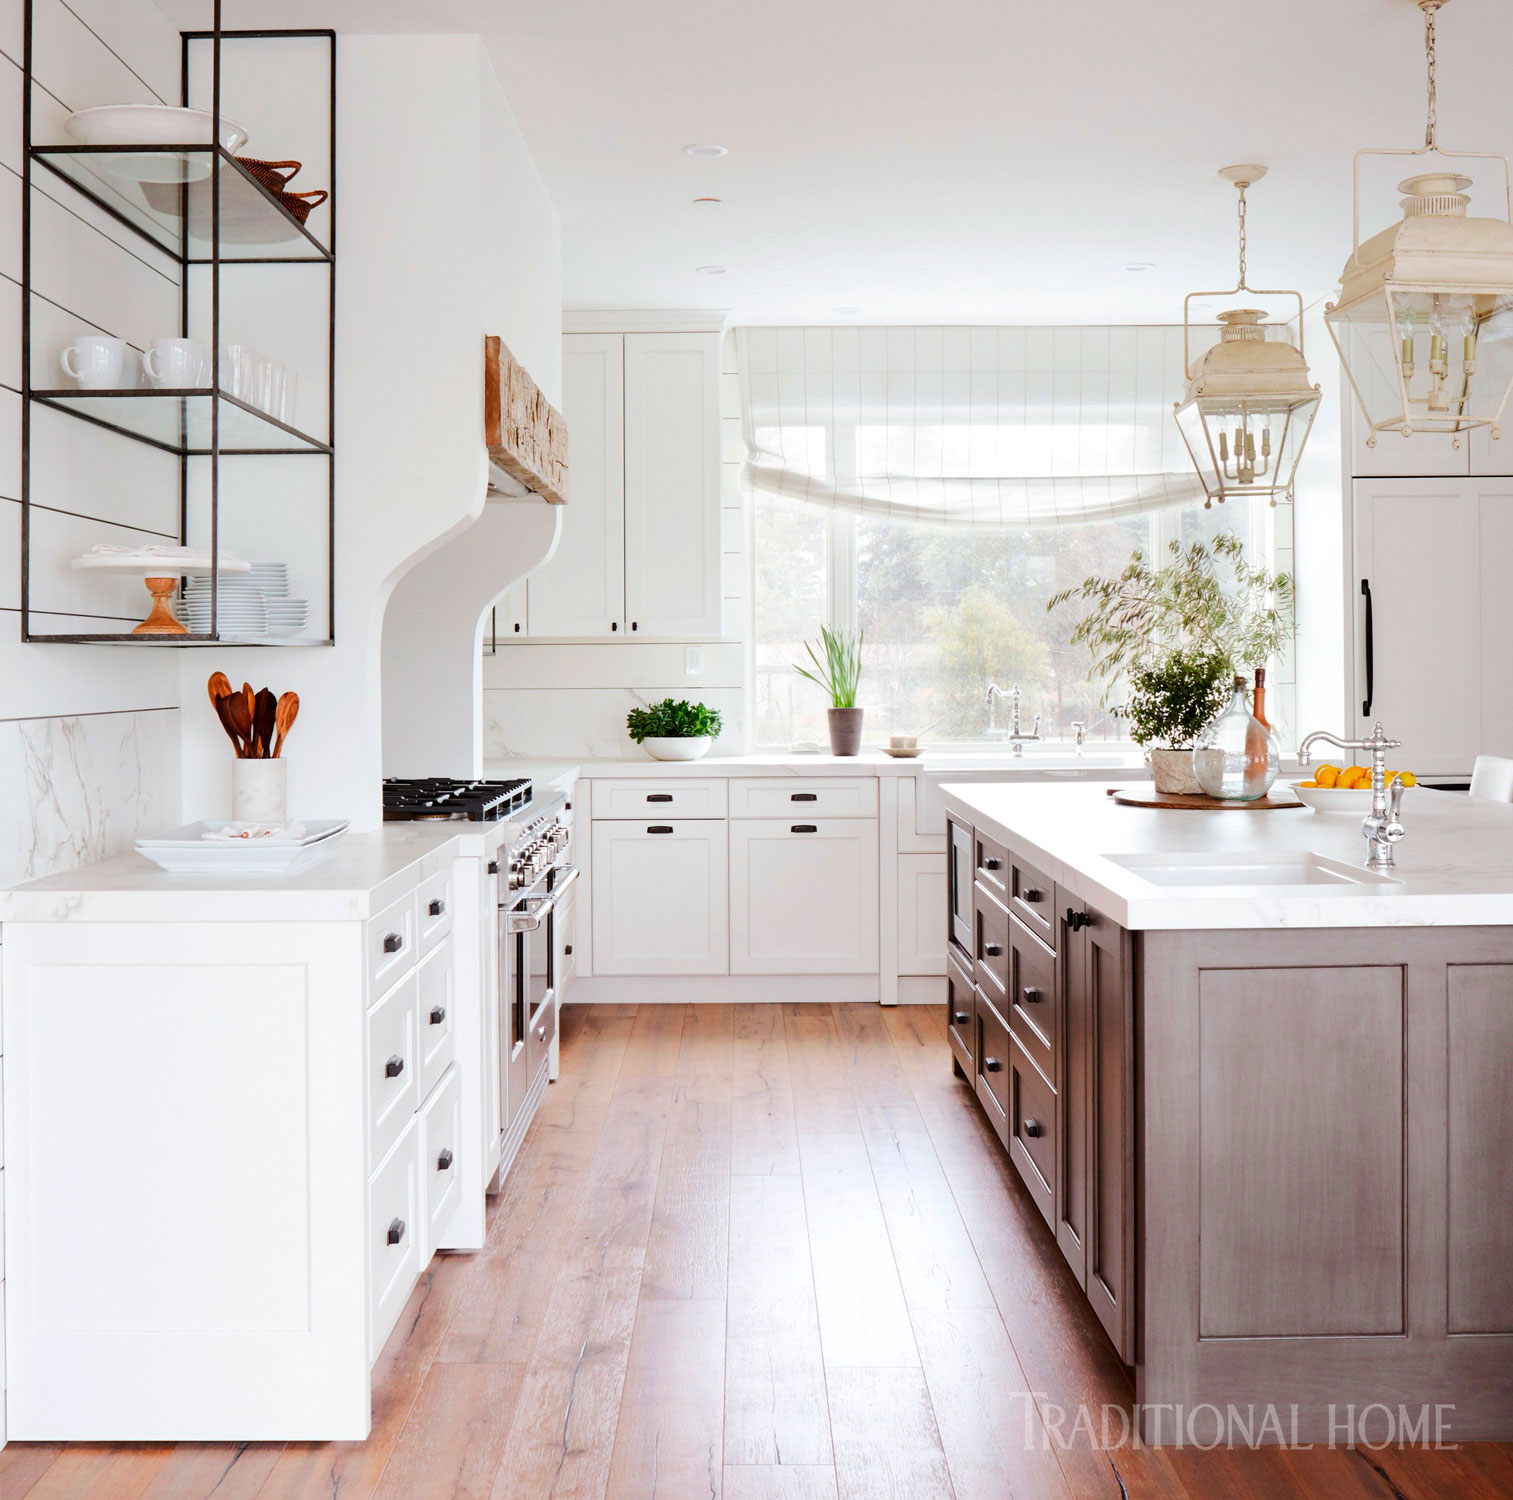 Farmhouse Kitchen Cabinets: White Farmhouse-Style Kitchen